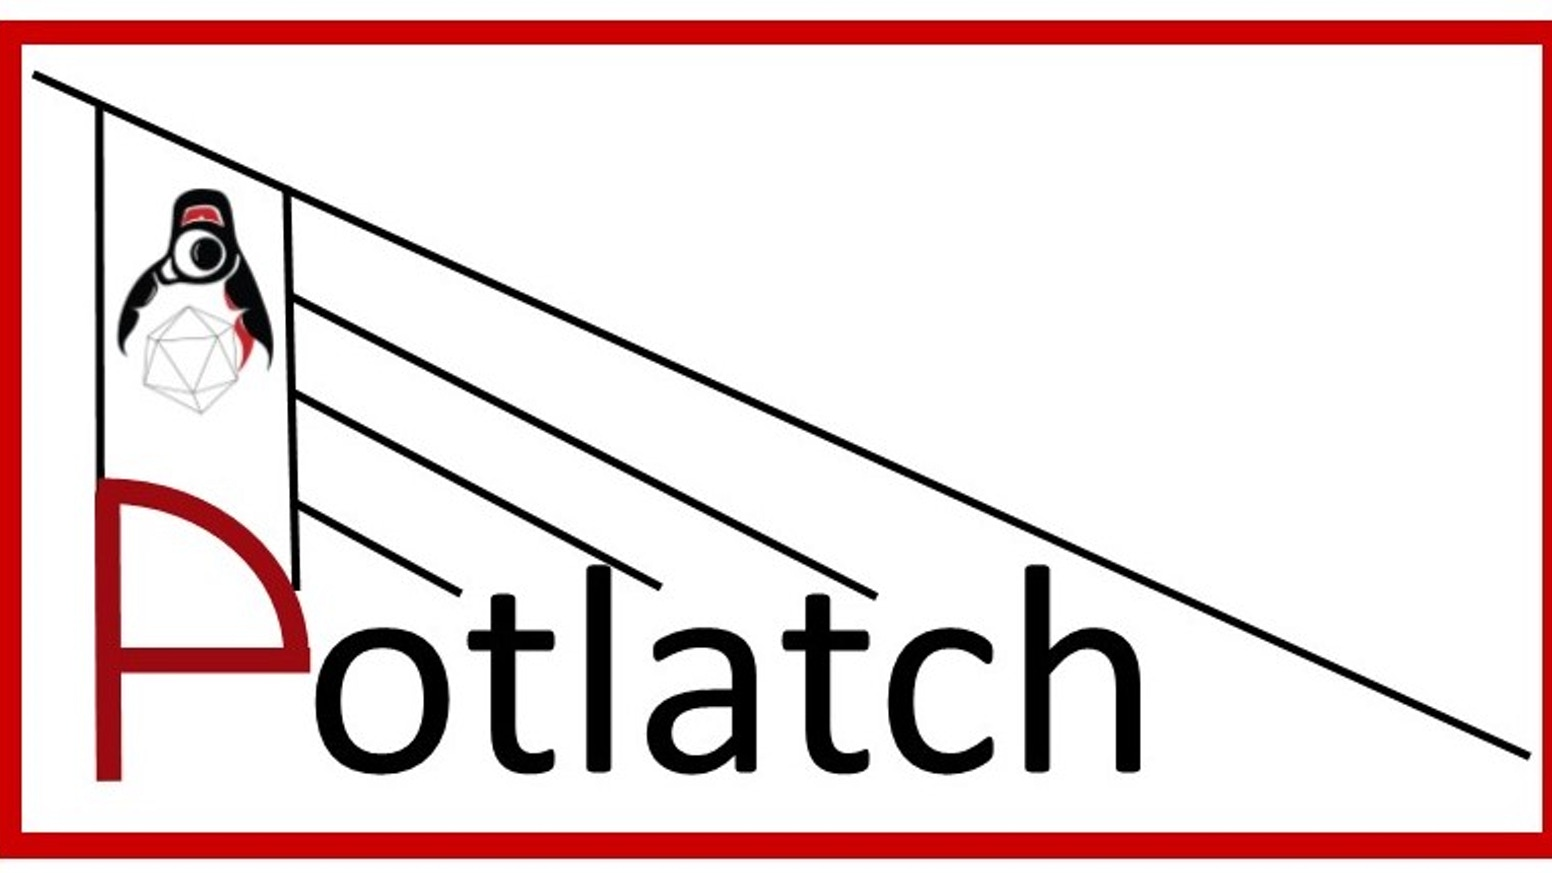 Potlatch is a card game based on indigenous economic systems of sharing, gifting, and status. It uses both English and Lushootseed.